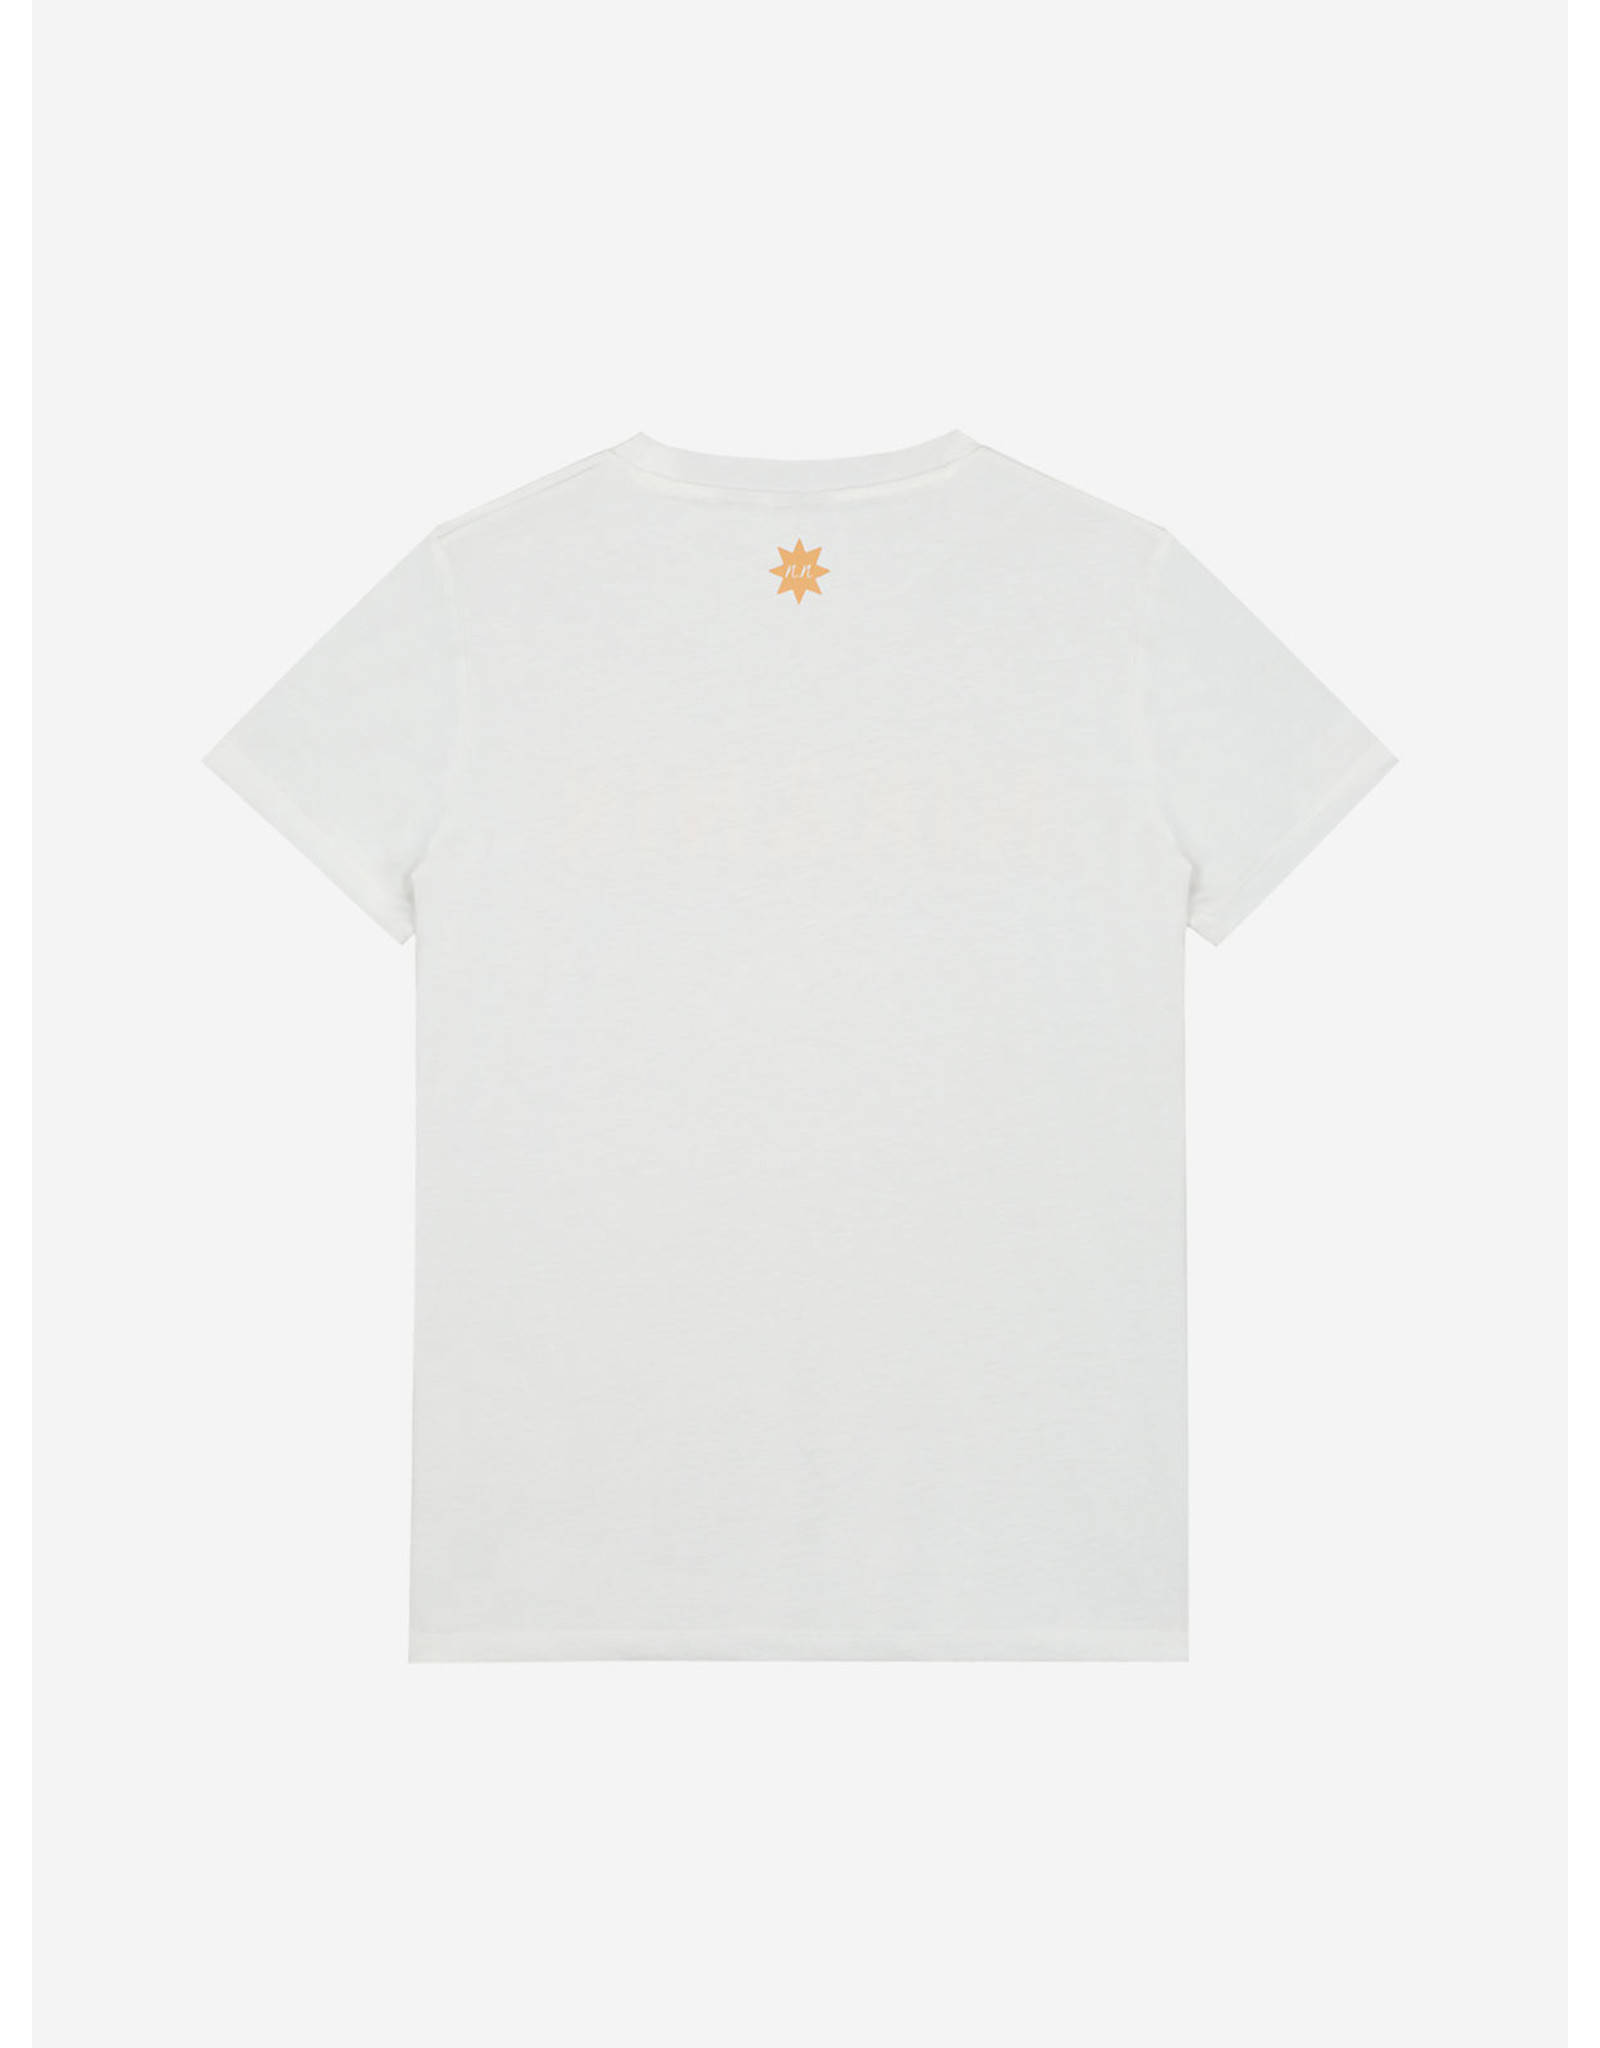 Nik&Nik NIK&NIK More Love T-shirt Off White